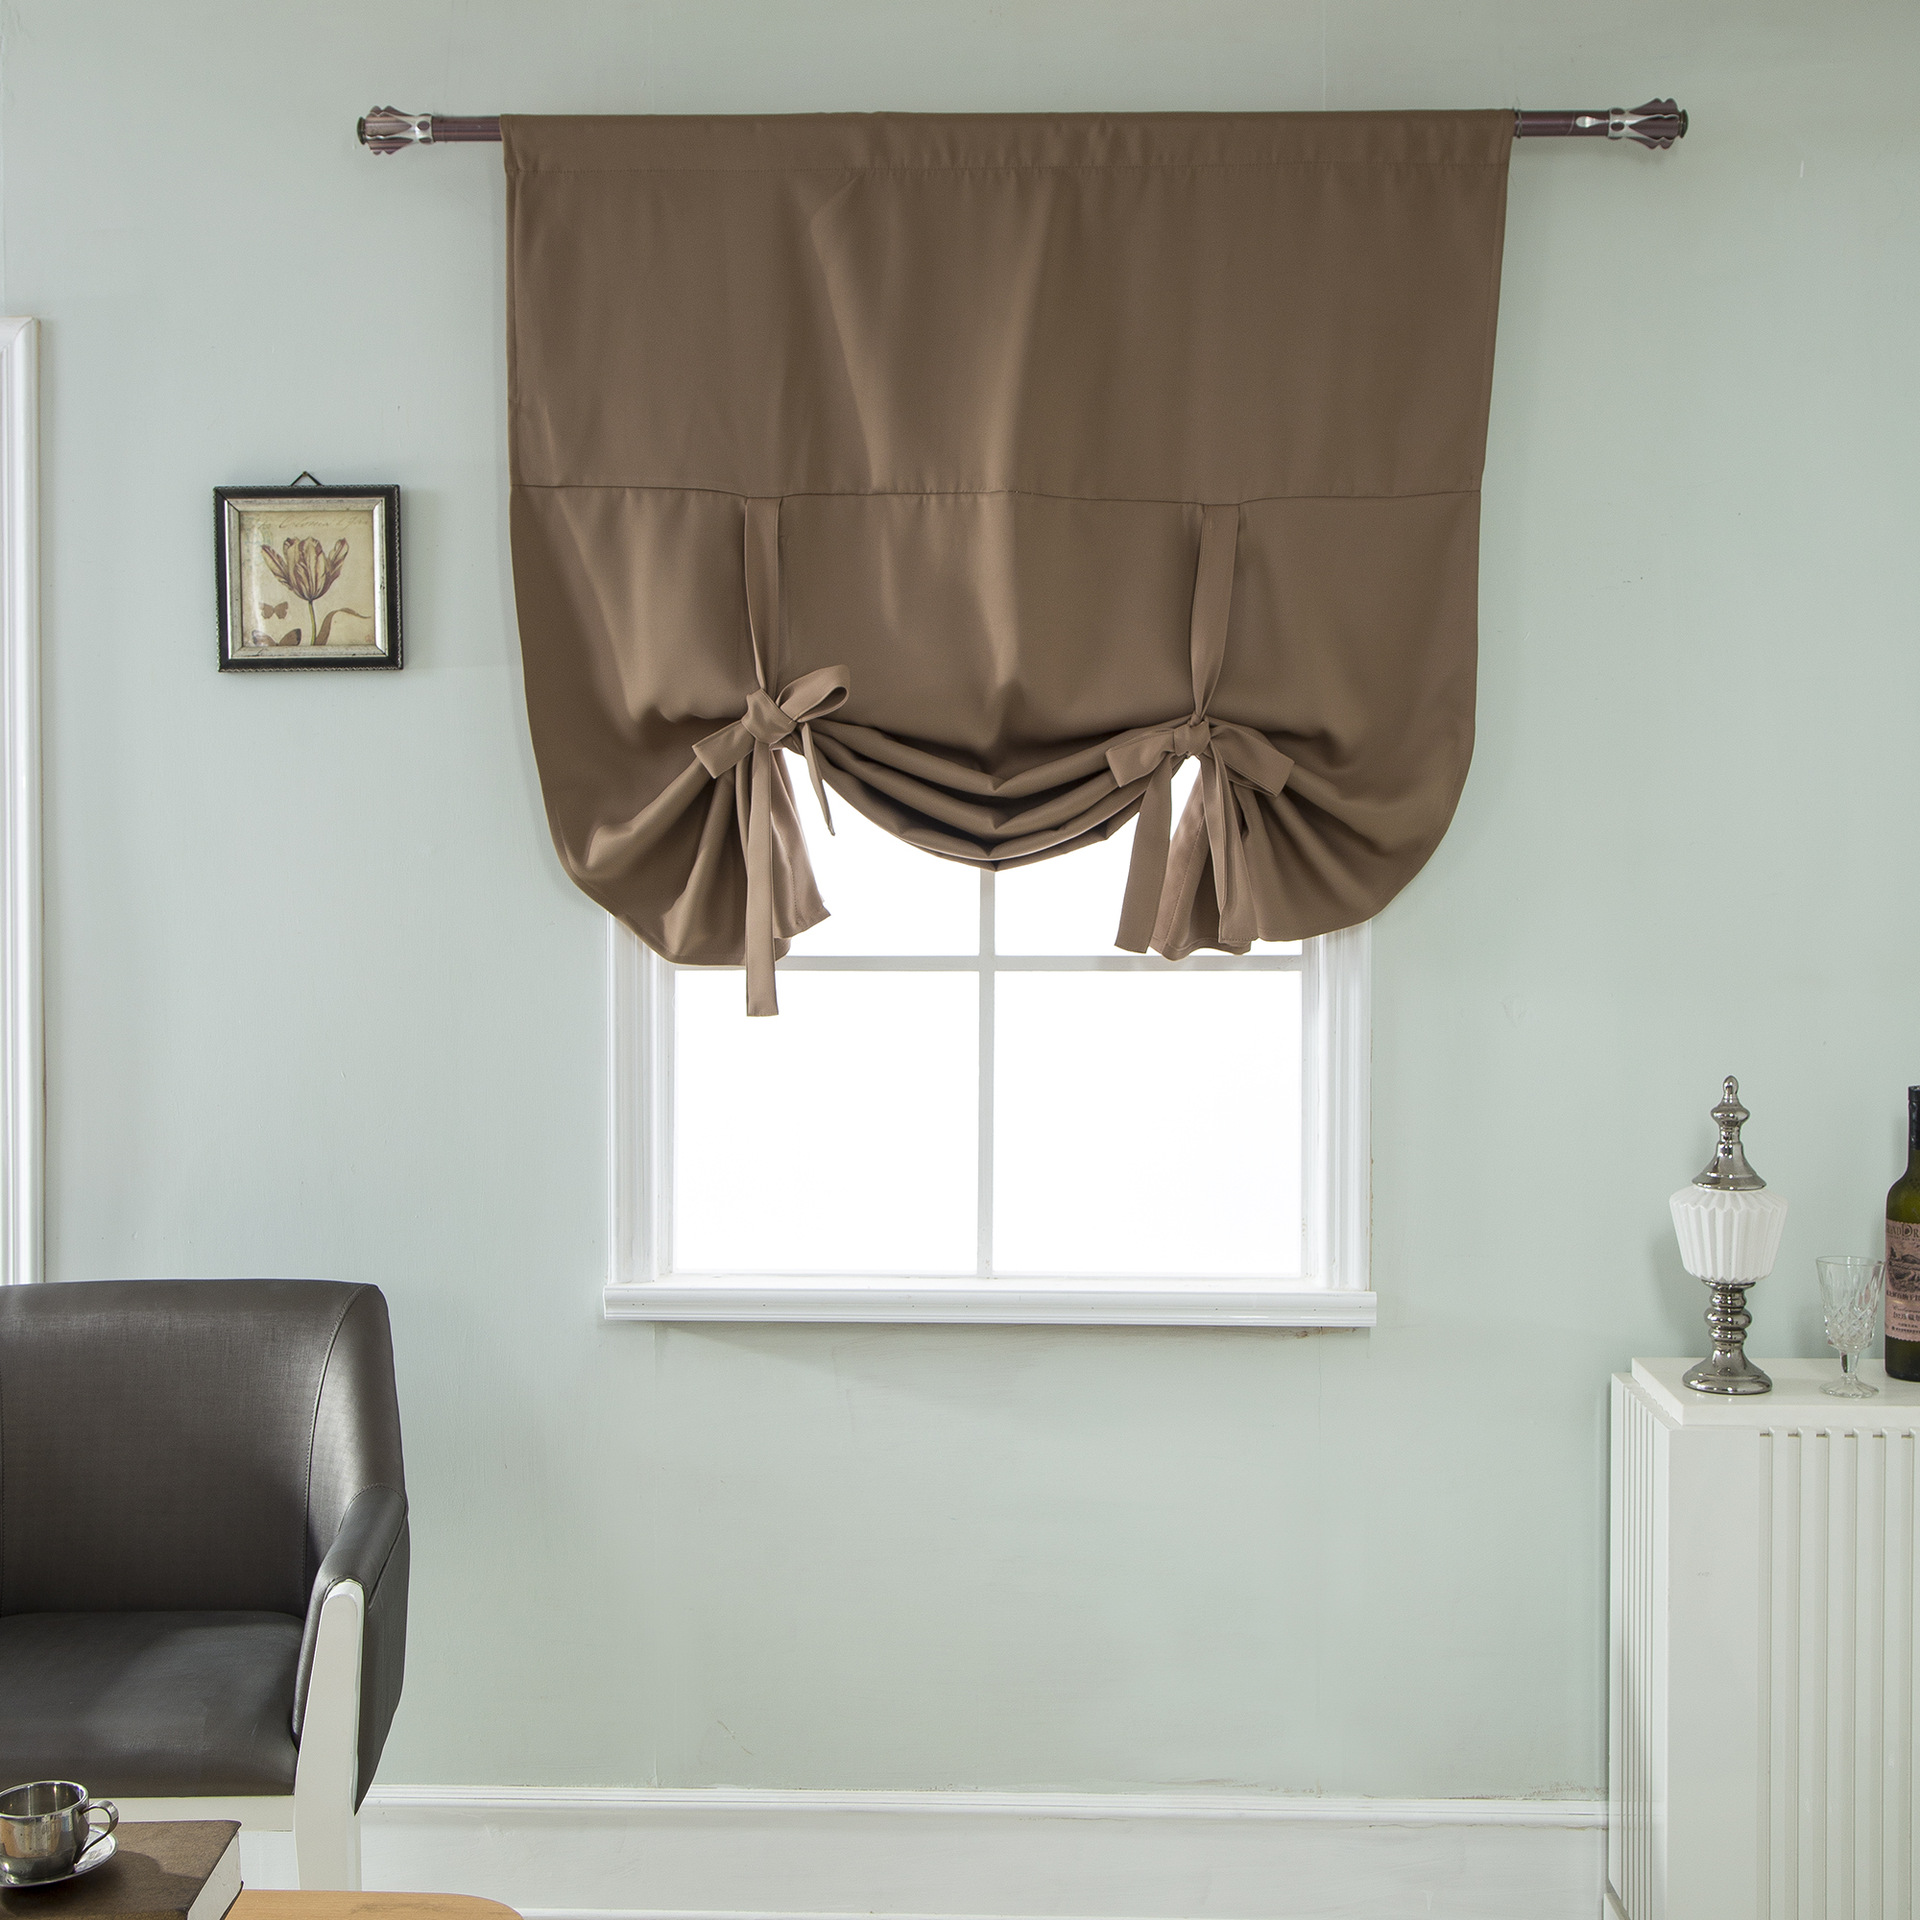 Curtains Blinds Room Darkening Short Roman Window Curtain Tie Up Kitchen Shade Solid Color New Home Furniture Diy Hashtagcoffee Com Au